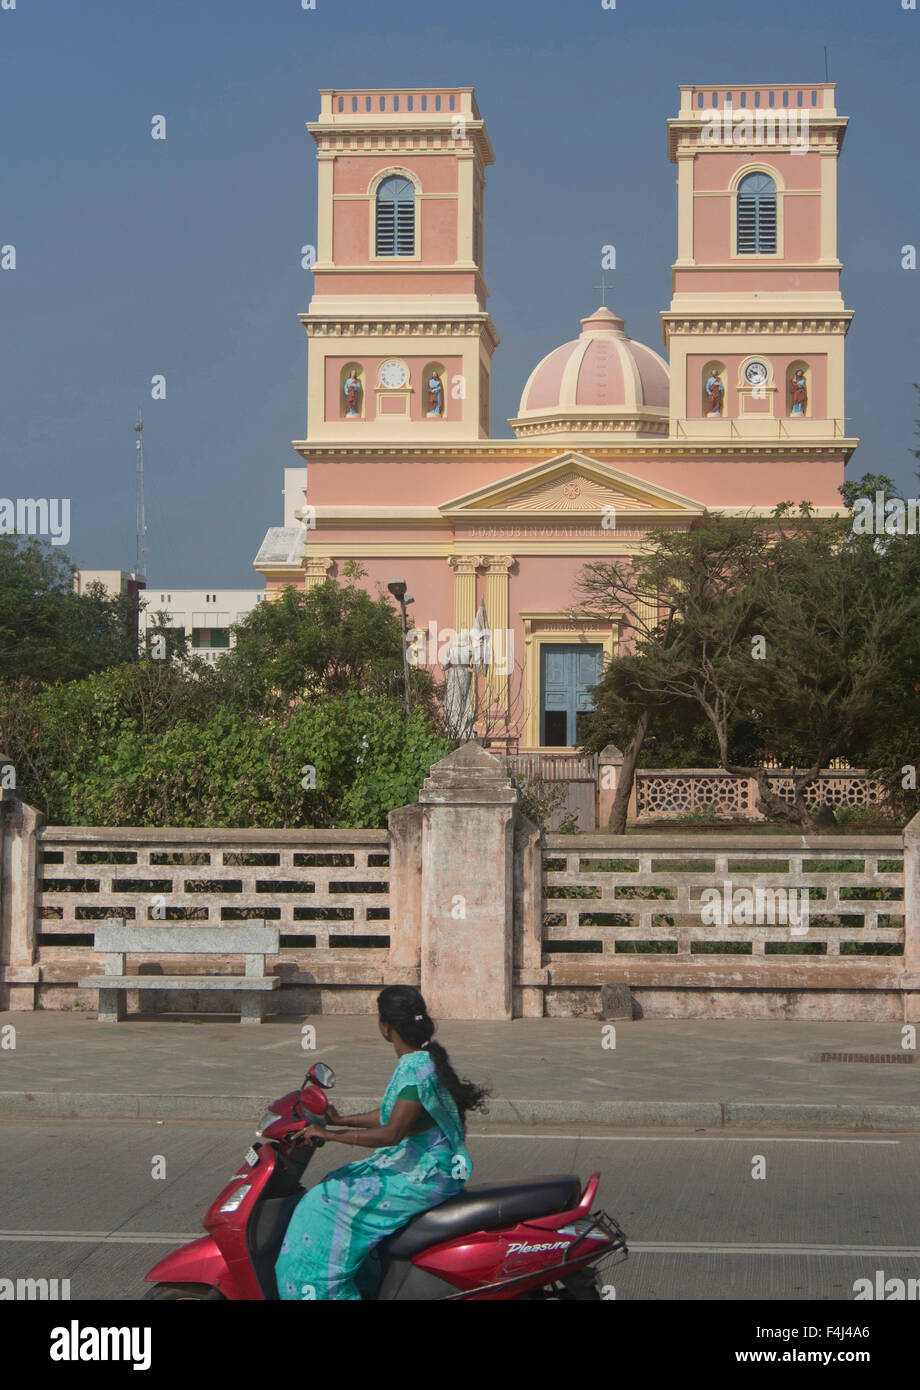 Local woman drives motorbike past traditional French architecture in the union territory of Pondicherry, Tamil Nadu, - Stock Image